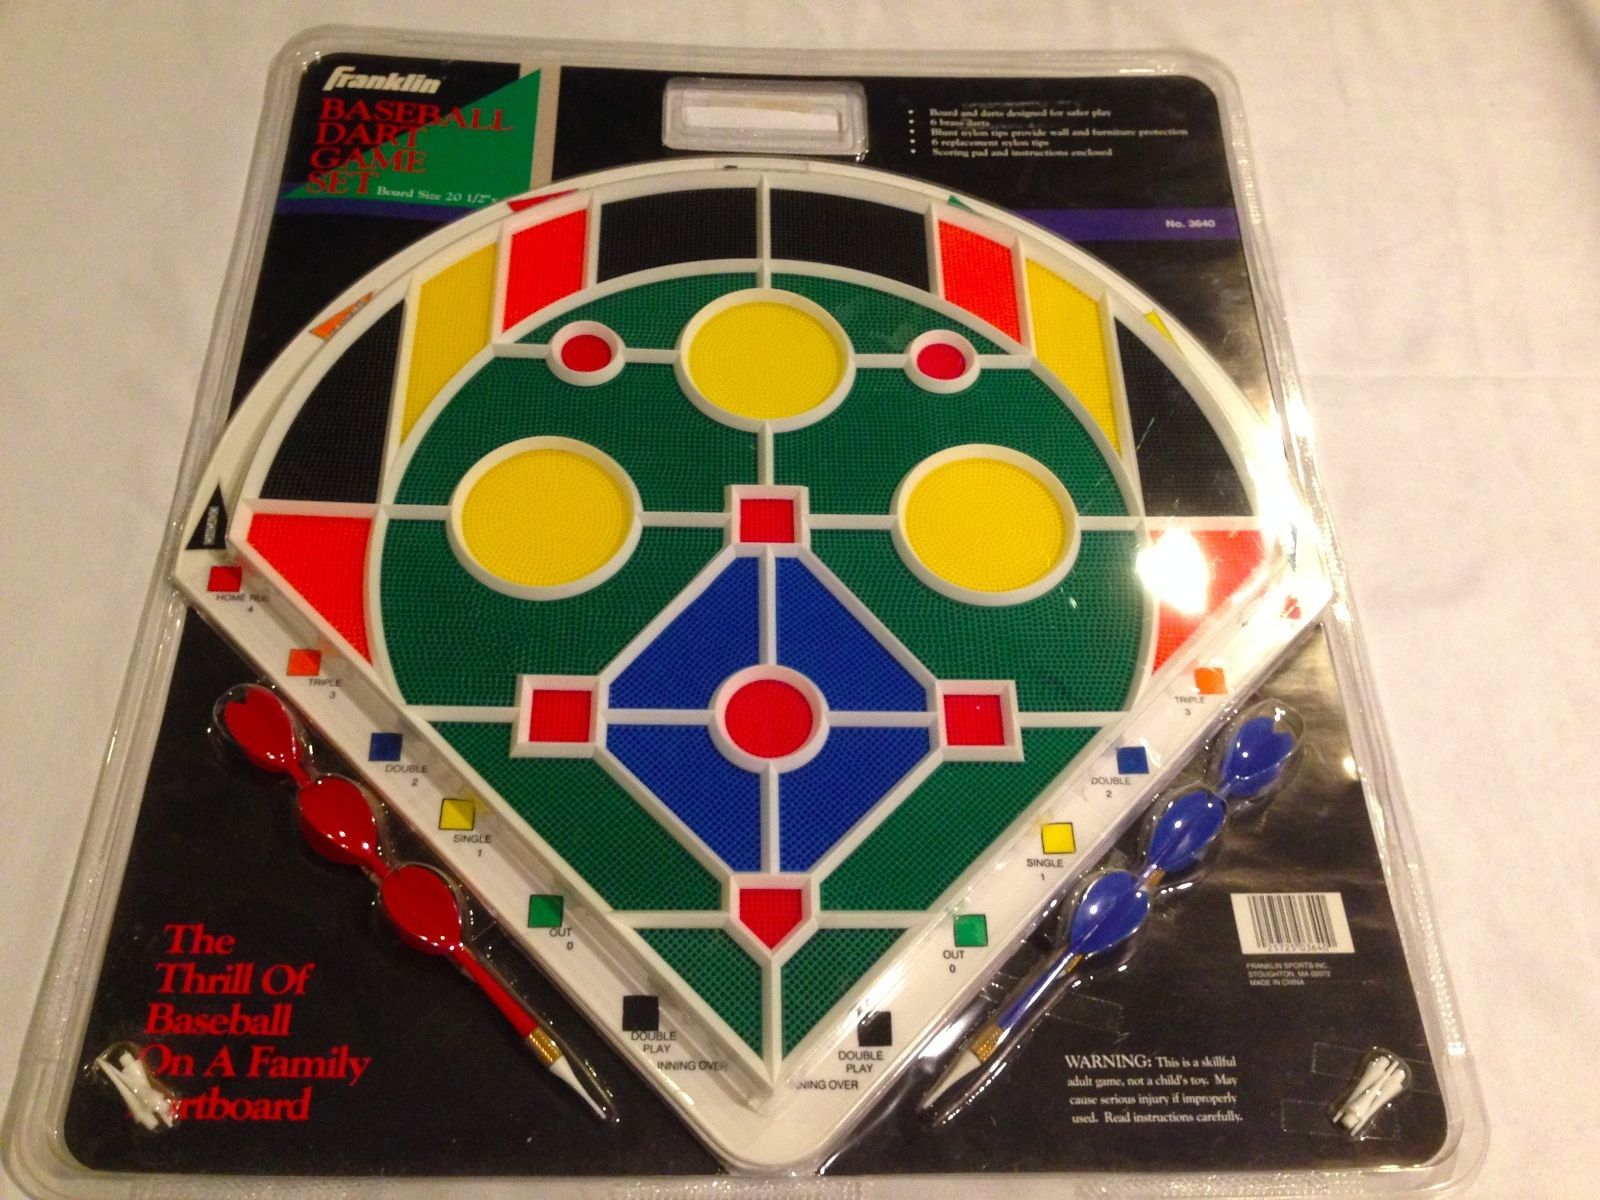 Brand New Vintage Franklin Baseball Dart Board Game With Darts